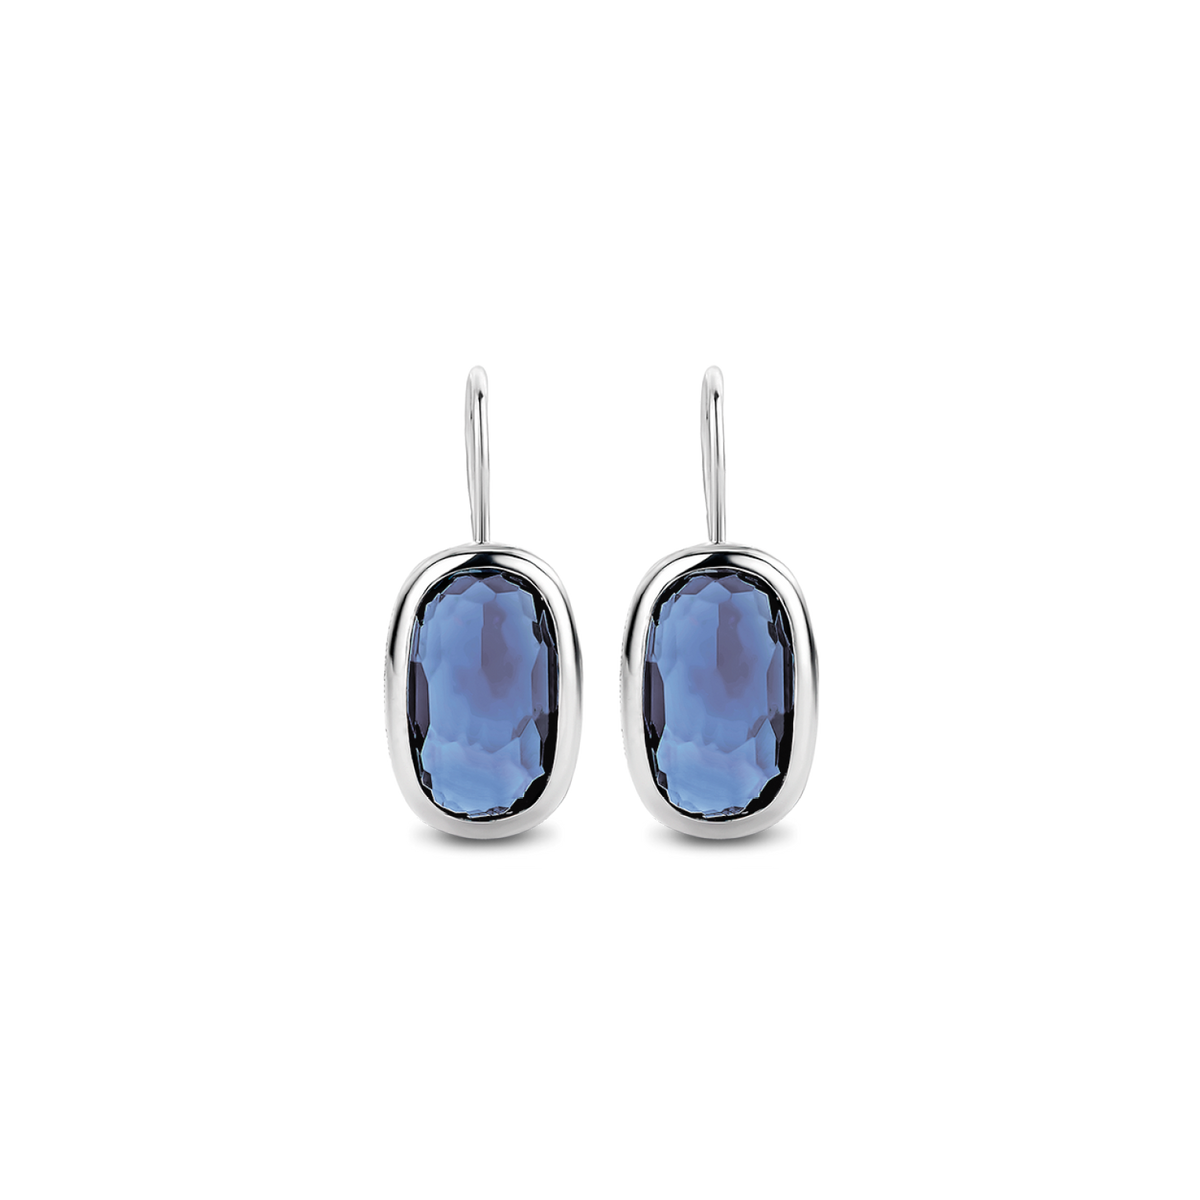 TI SENTO - Milano Earrings 7788DB